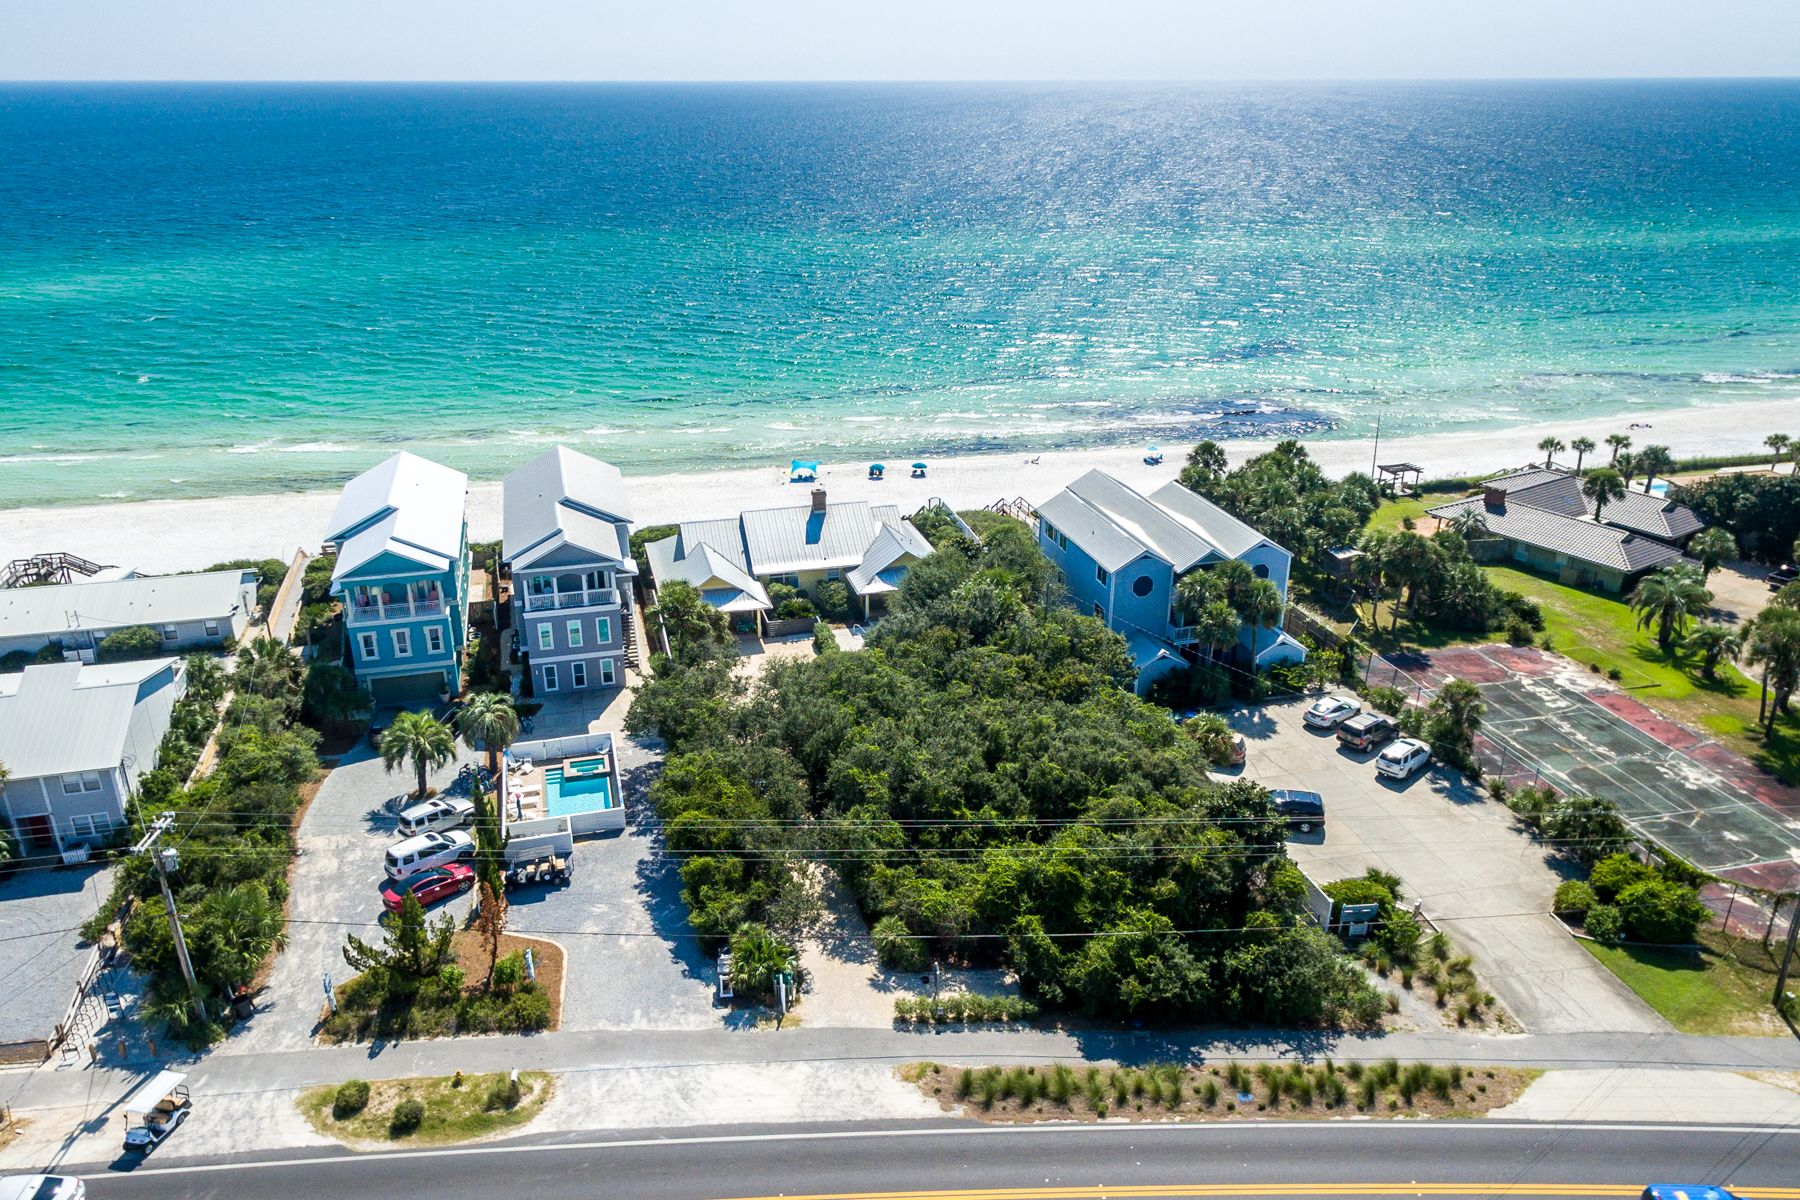 Terreno por un Venta en 30A Beach Front Property with No Homeowner Association 8016 East County Highway 30A, Seacrest, Florida 32461 Estados Unidos